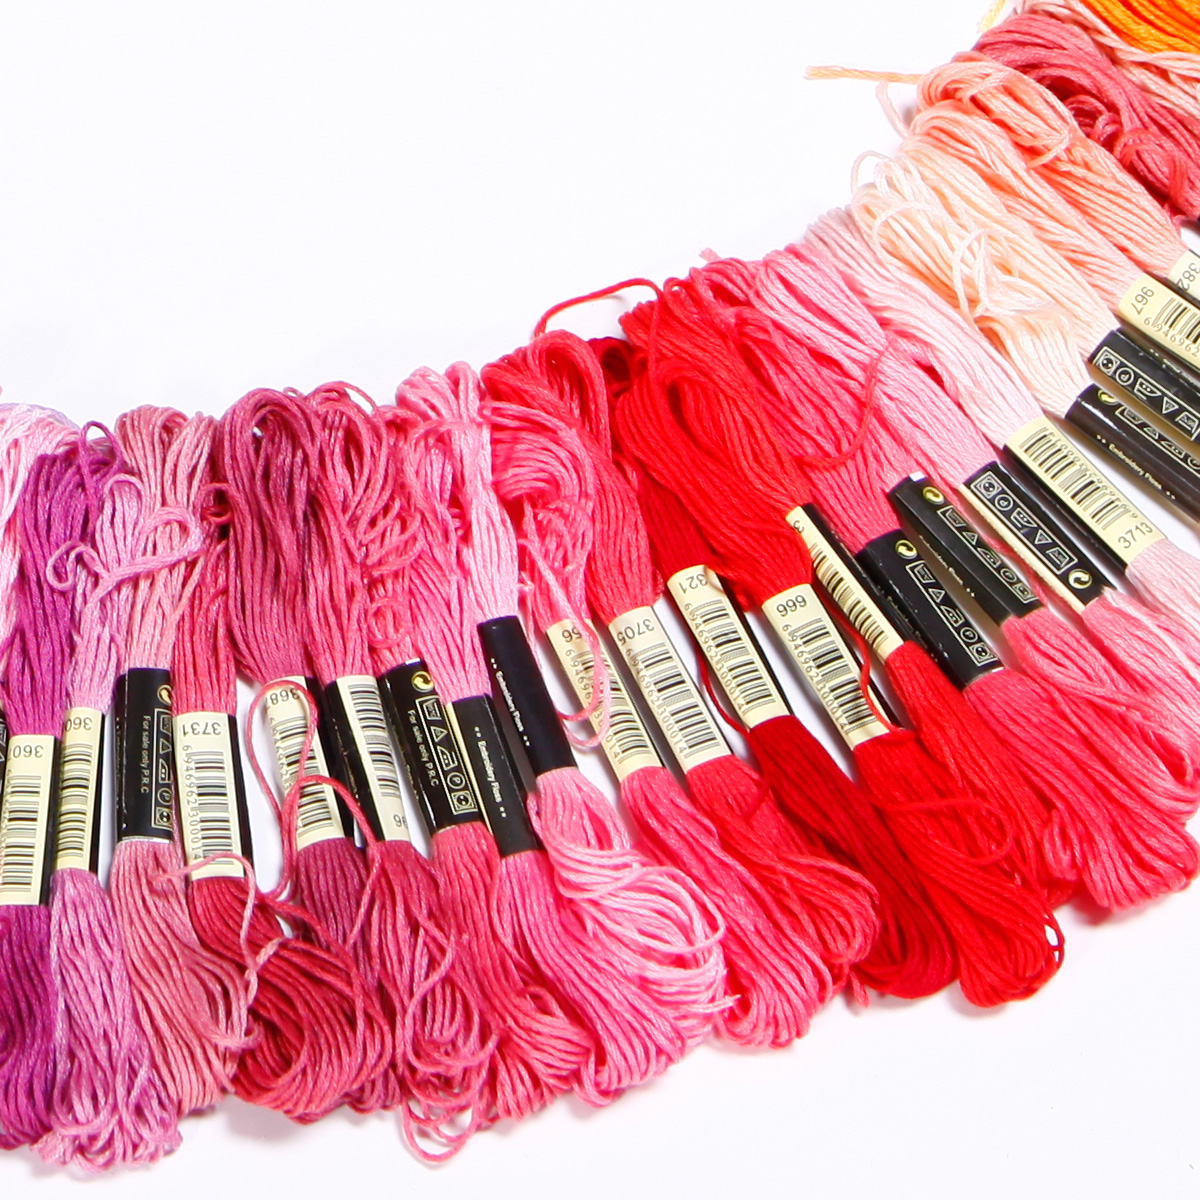 50-300-Color-Cross-Stitch-Thread-Embroidery-Floss-Sewing-Skeins-100-Cotton-Line thumbnail 7